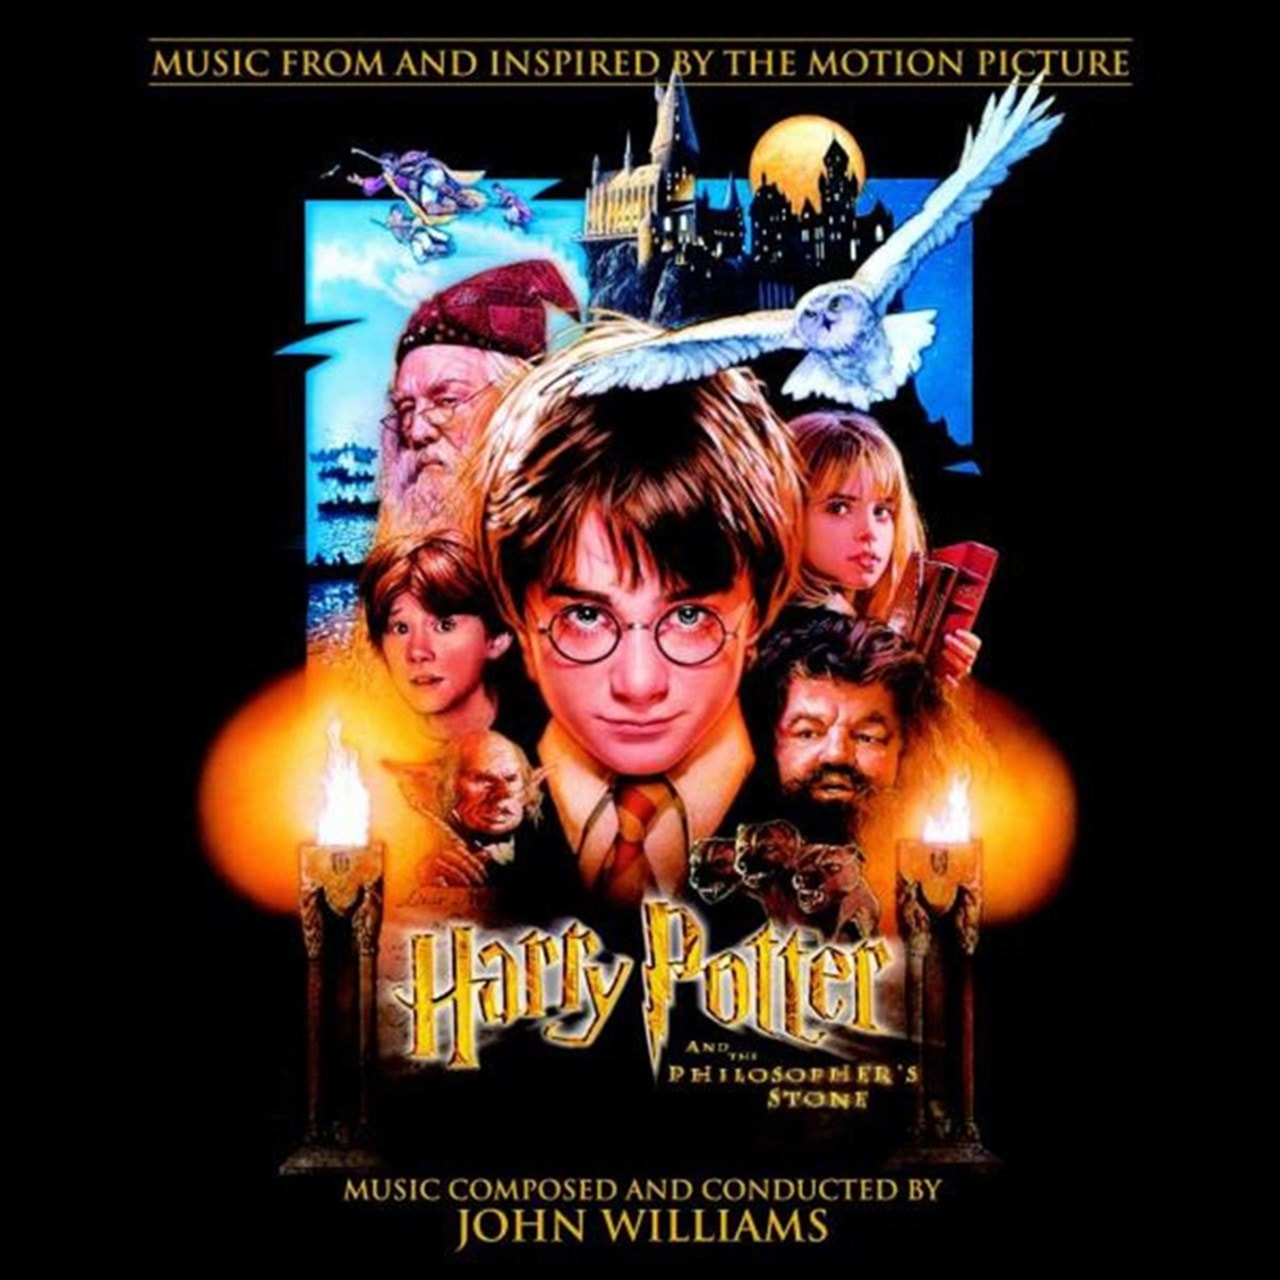 Harry Potter and the Philosopher's Stone - 1